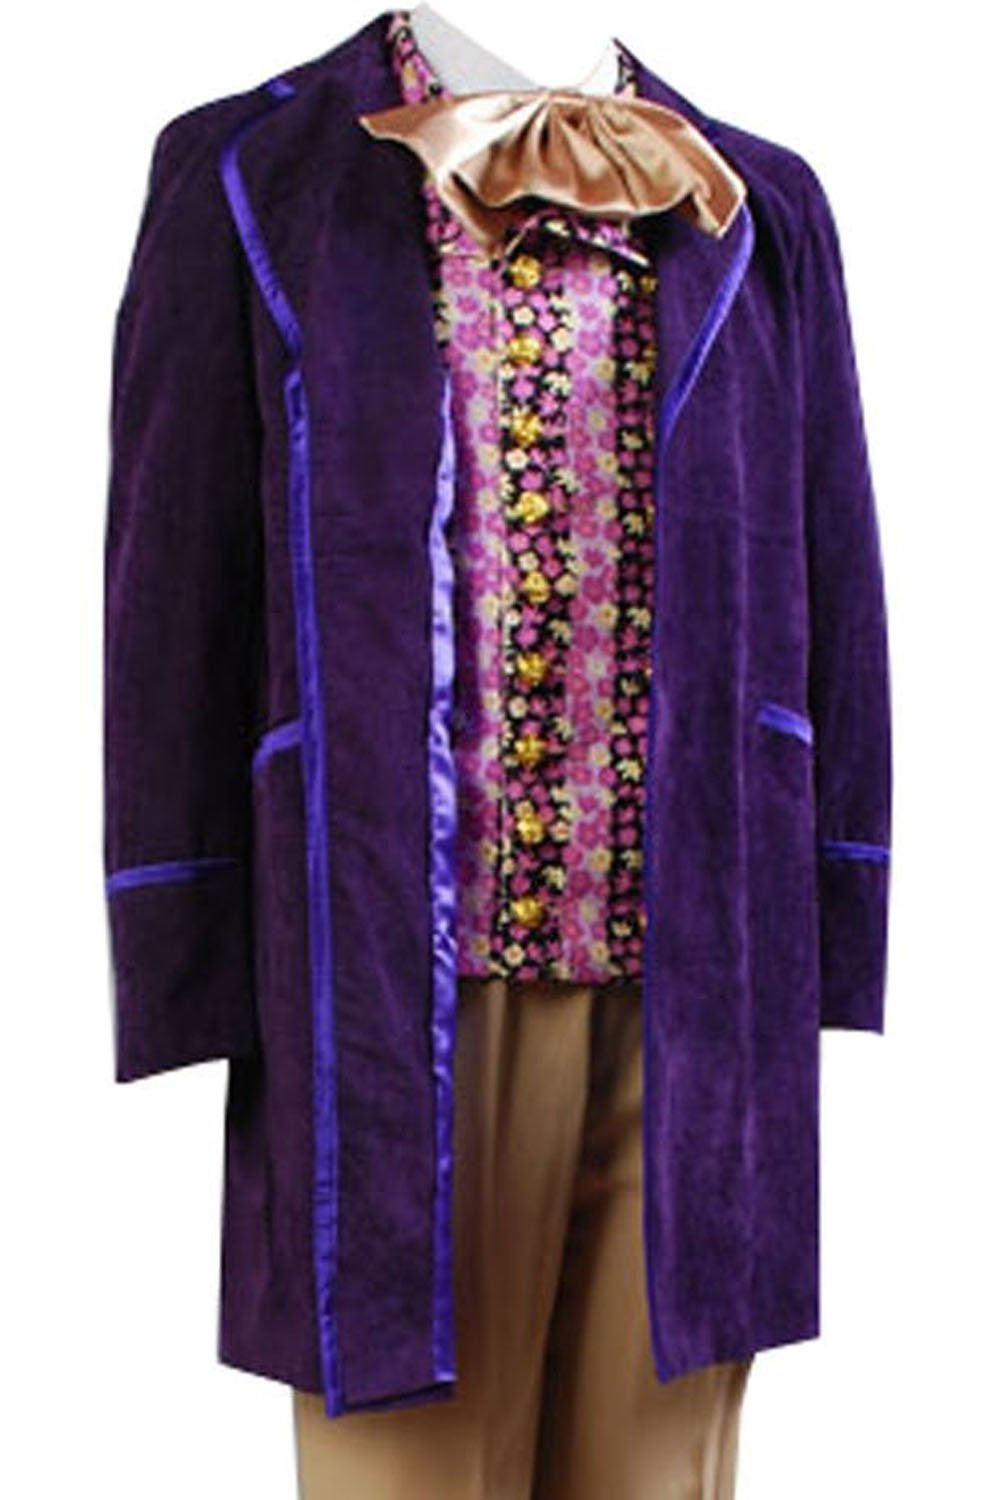 mingL Willy Wonka Charlie and the Chocolate Factory Johnny Depp Jacket Whole Costume Suit Purple